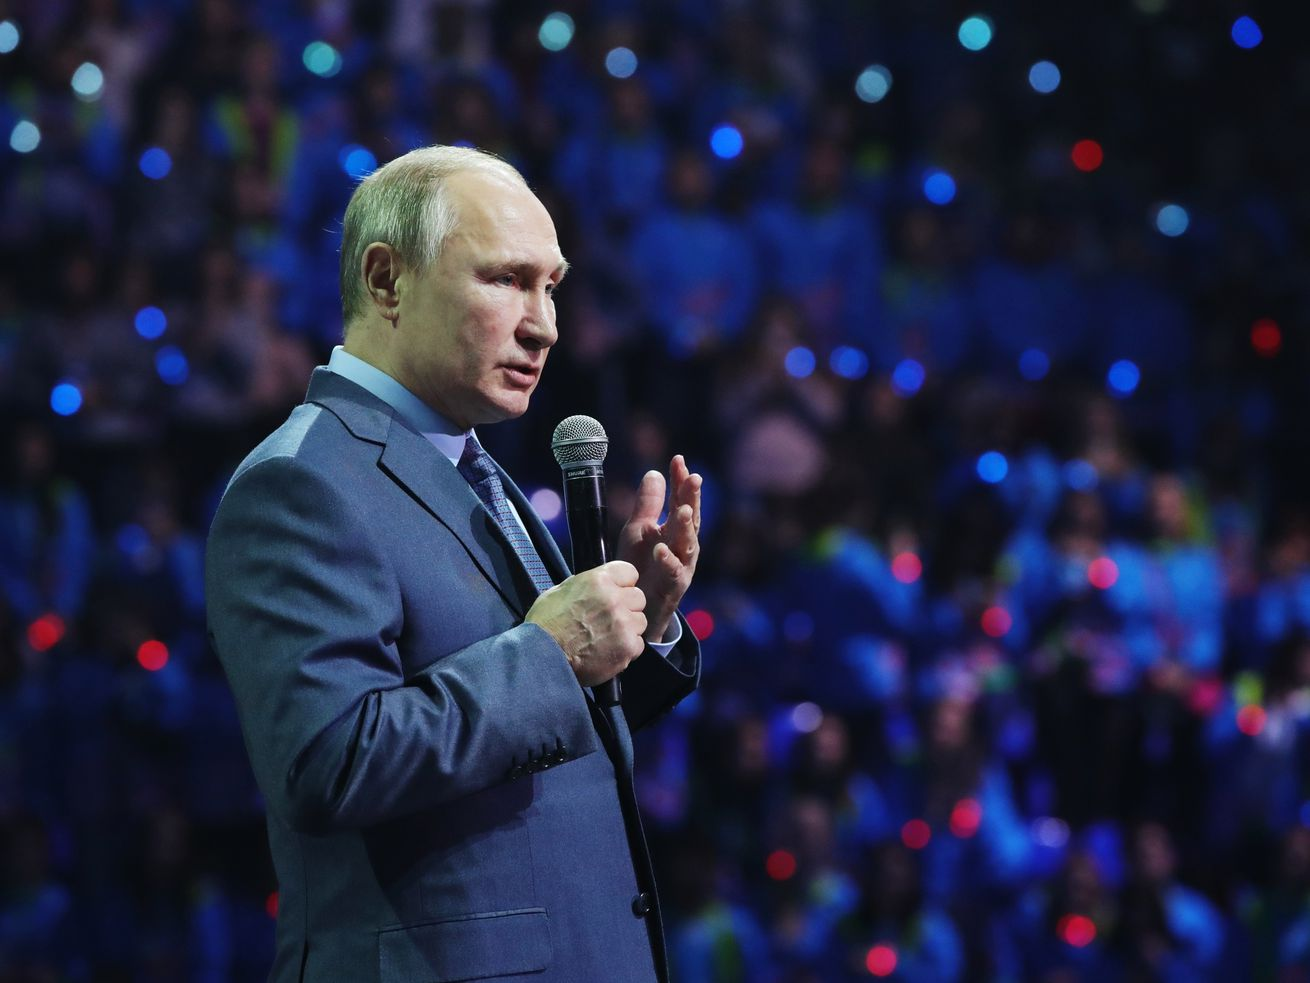 Putin offers U.S. to extend key nuclear pact right now